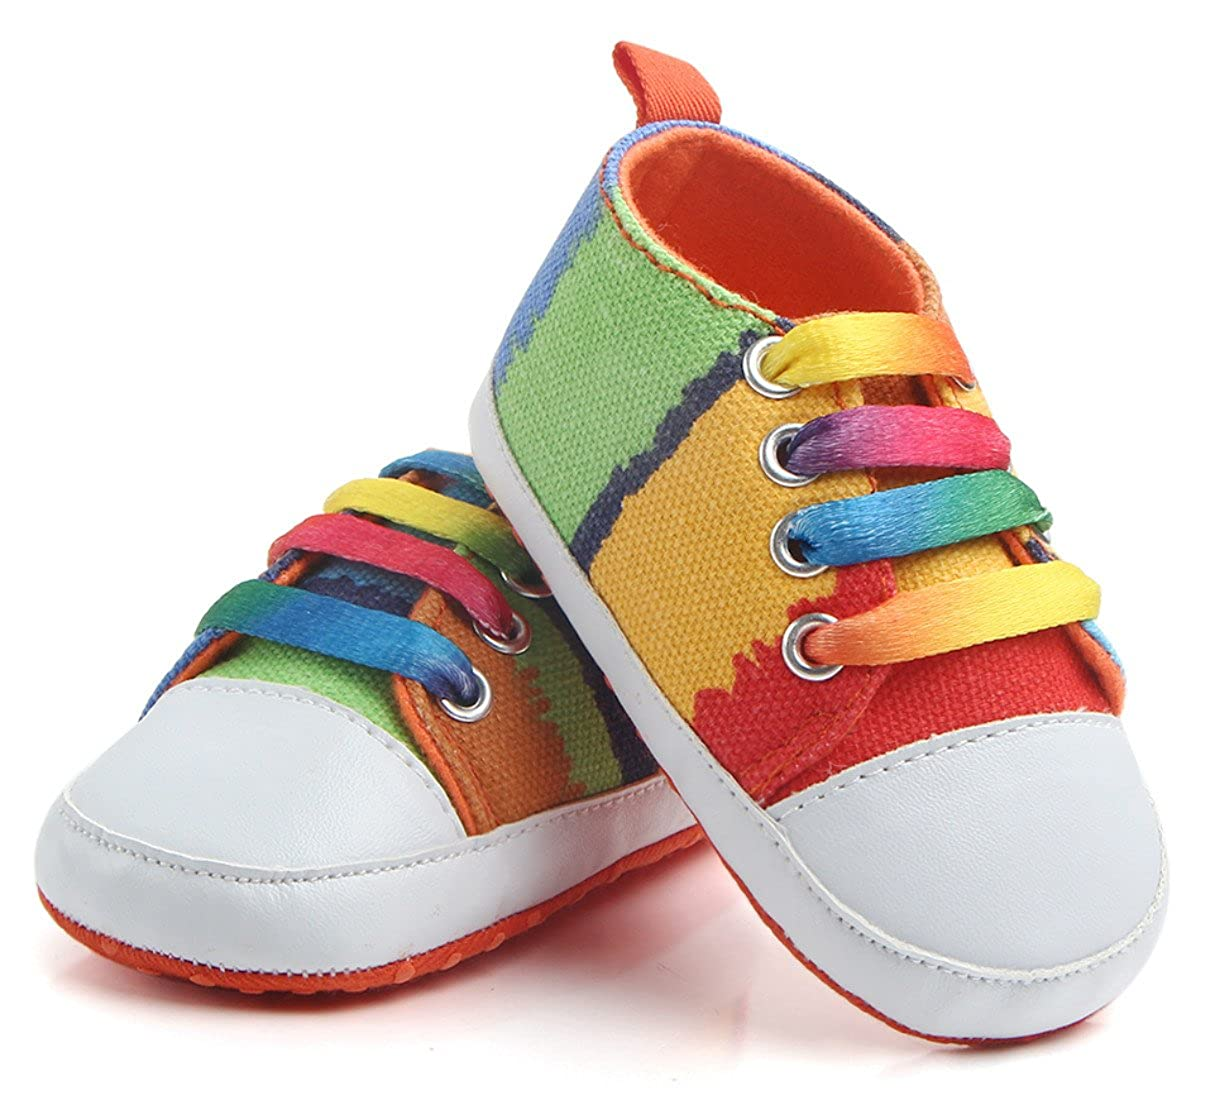 Upper Rubber Dots Sole Toddler Sneaker Skidproof First Walkers 0-18 Months 3 Color VTuoP Rainbow Baby Shoes Canvas Sneaker